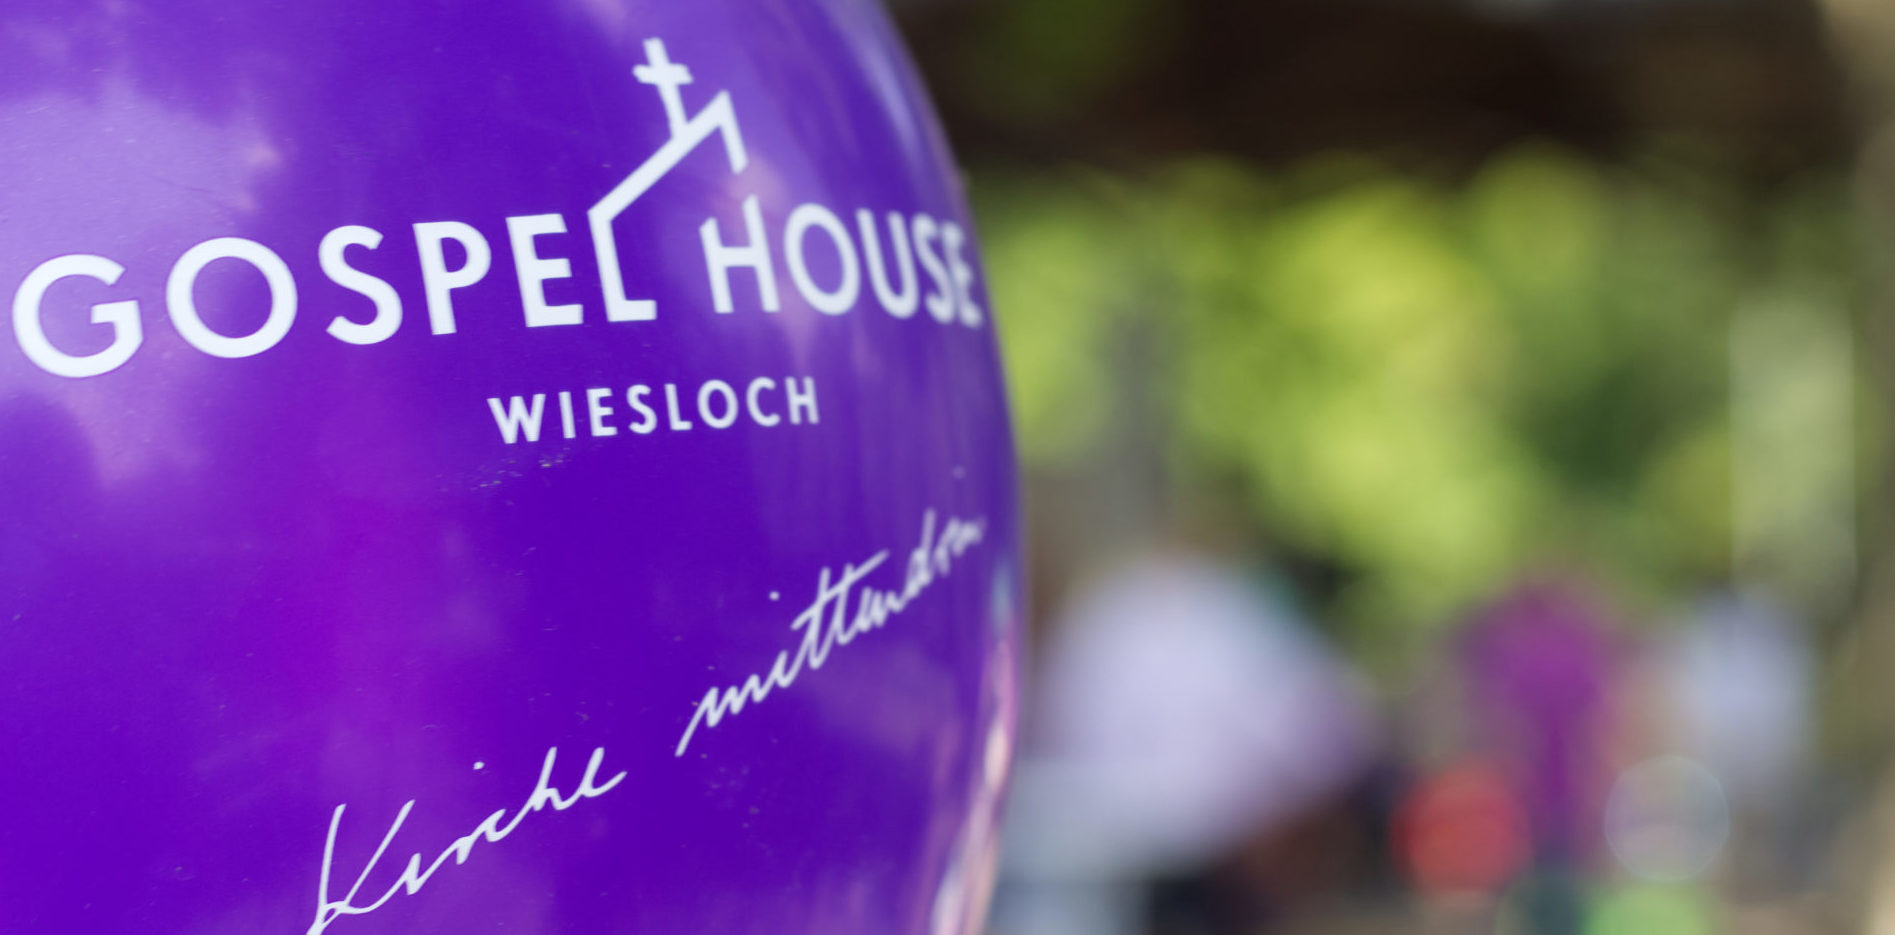 Ballon mit Gospel House Logo